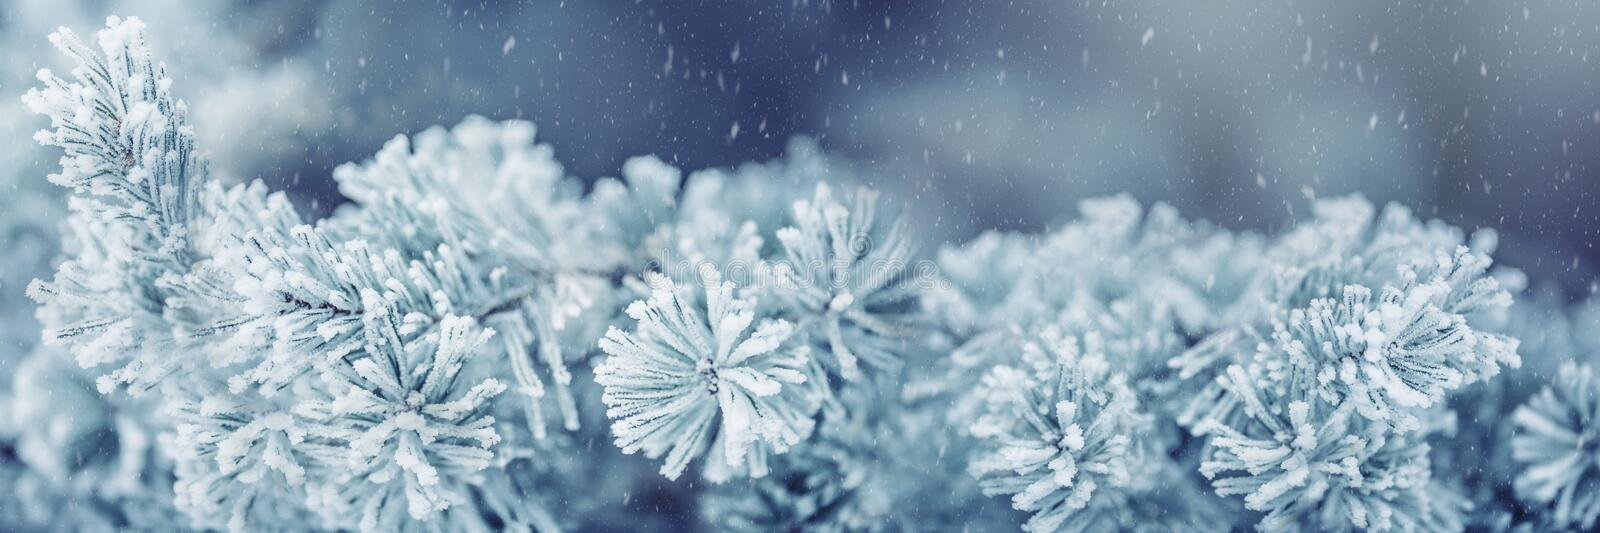 Winter and christmas border. Pine tree branches covered frost in snowy atmosphere royalty free stock photography